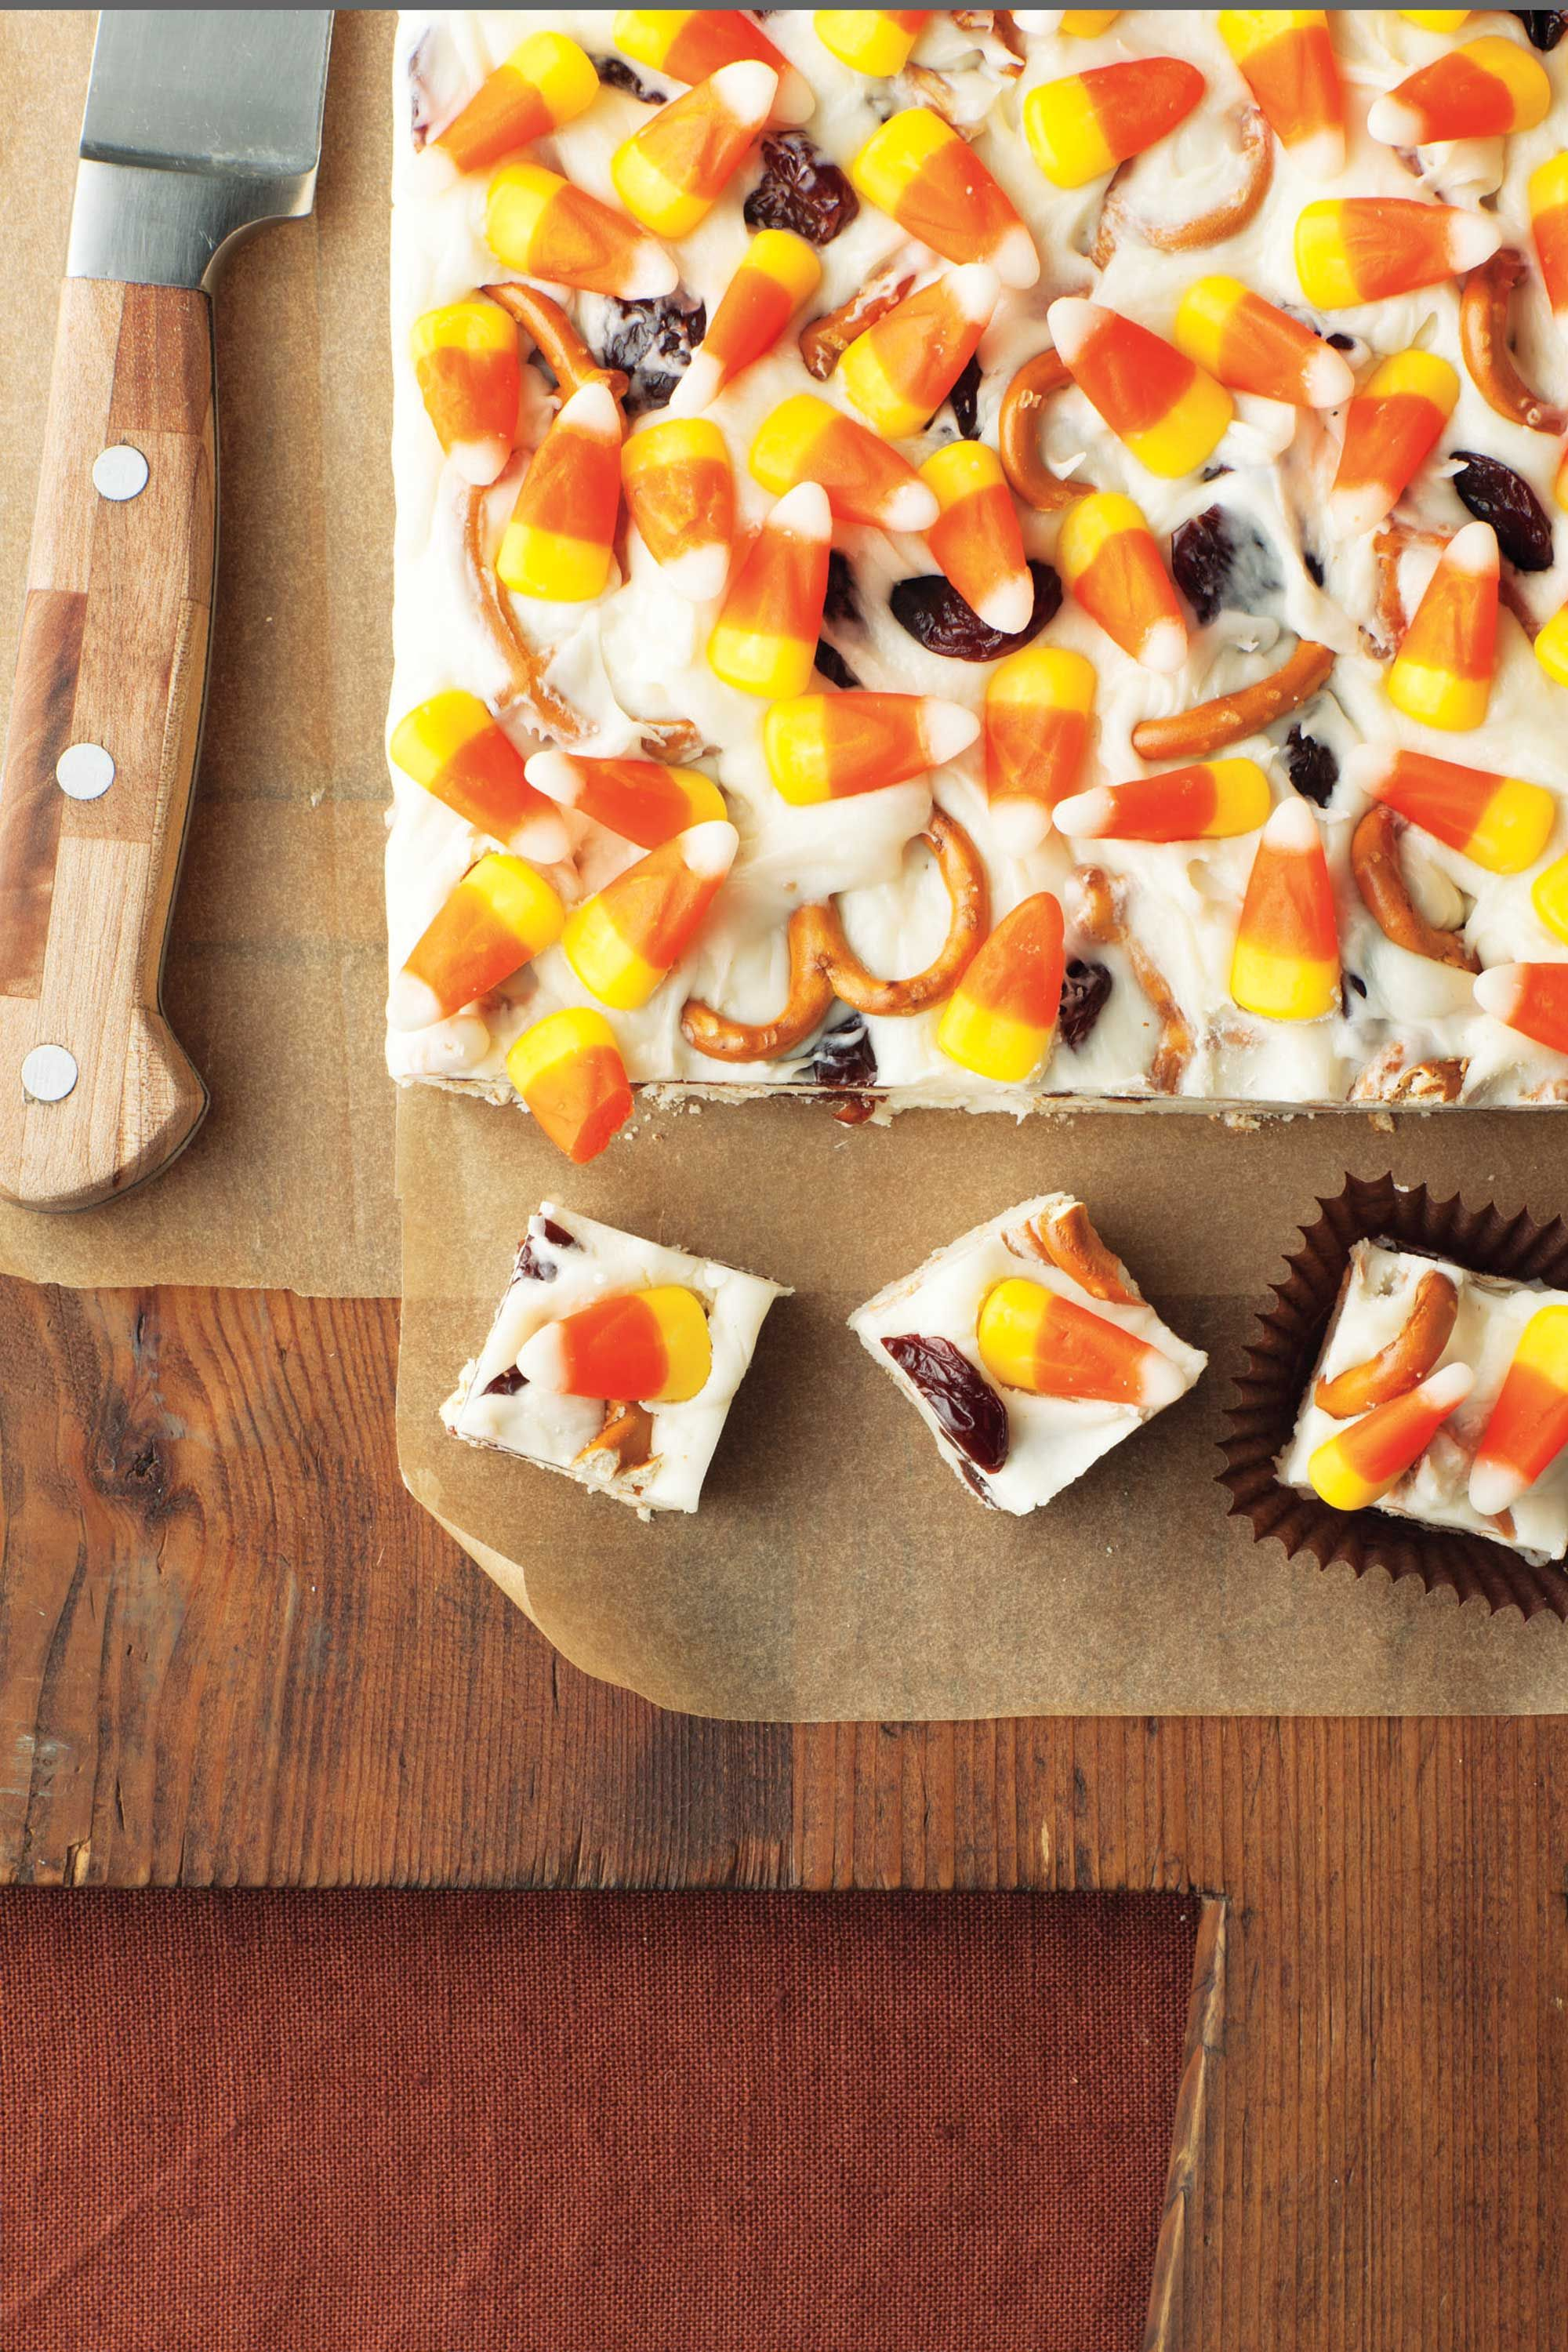 40 easy halloween treats - fun ideas for halloween treat recipes